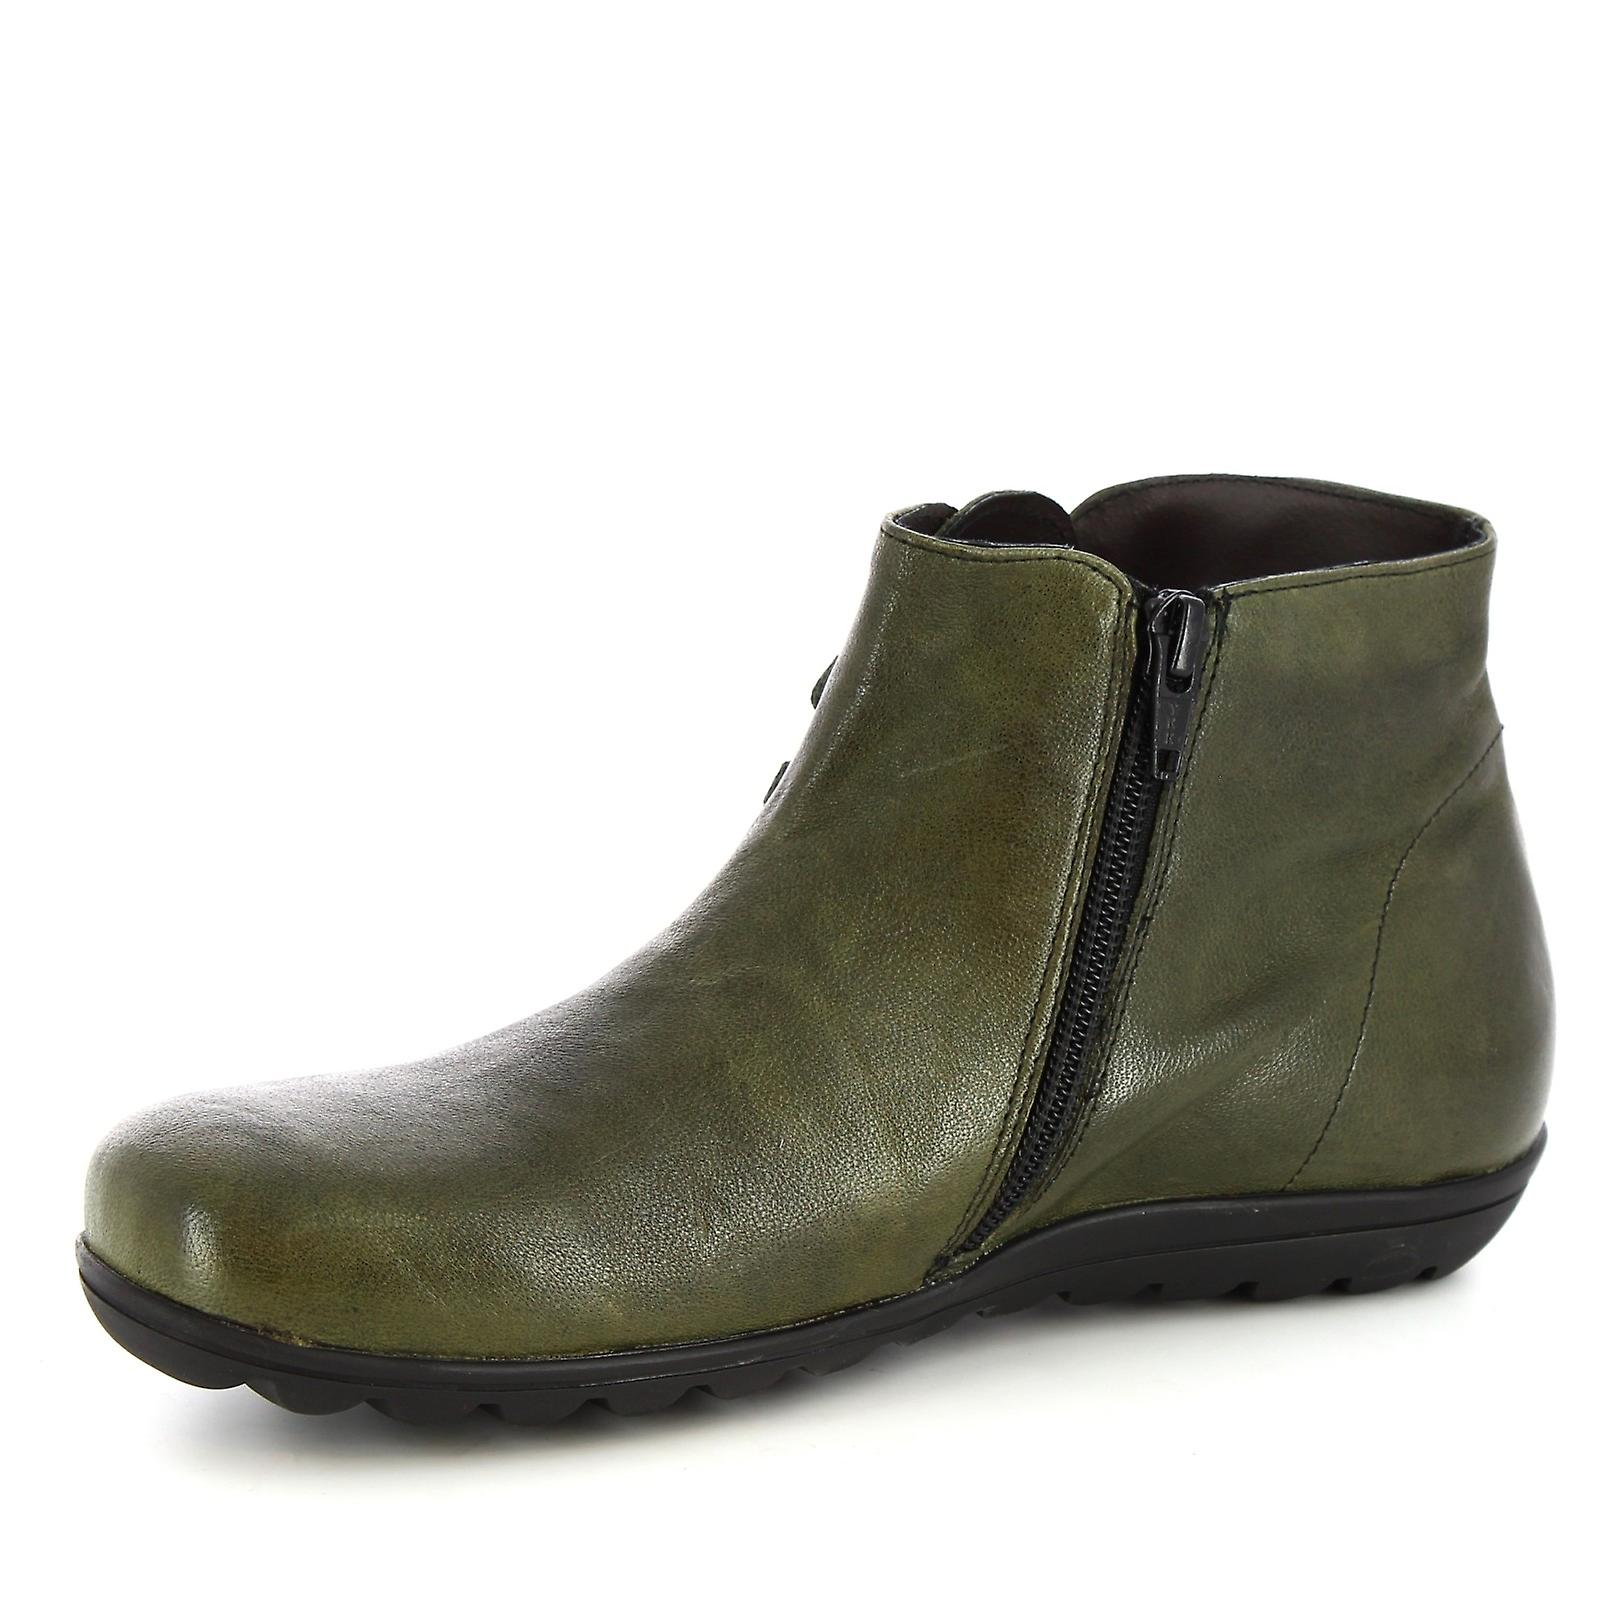 Leonardo Shoes Women's handmade ankle boots green calf leather with side zip